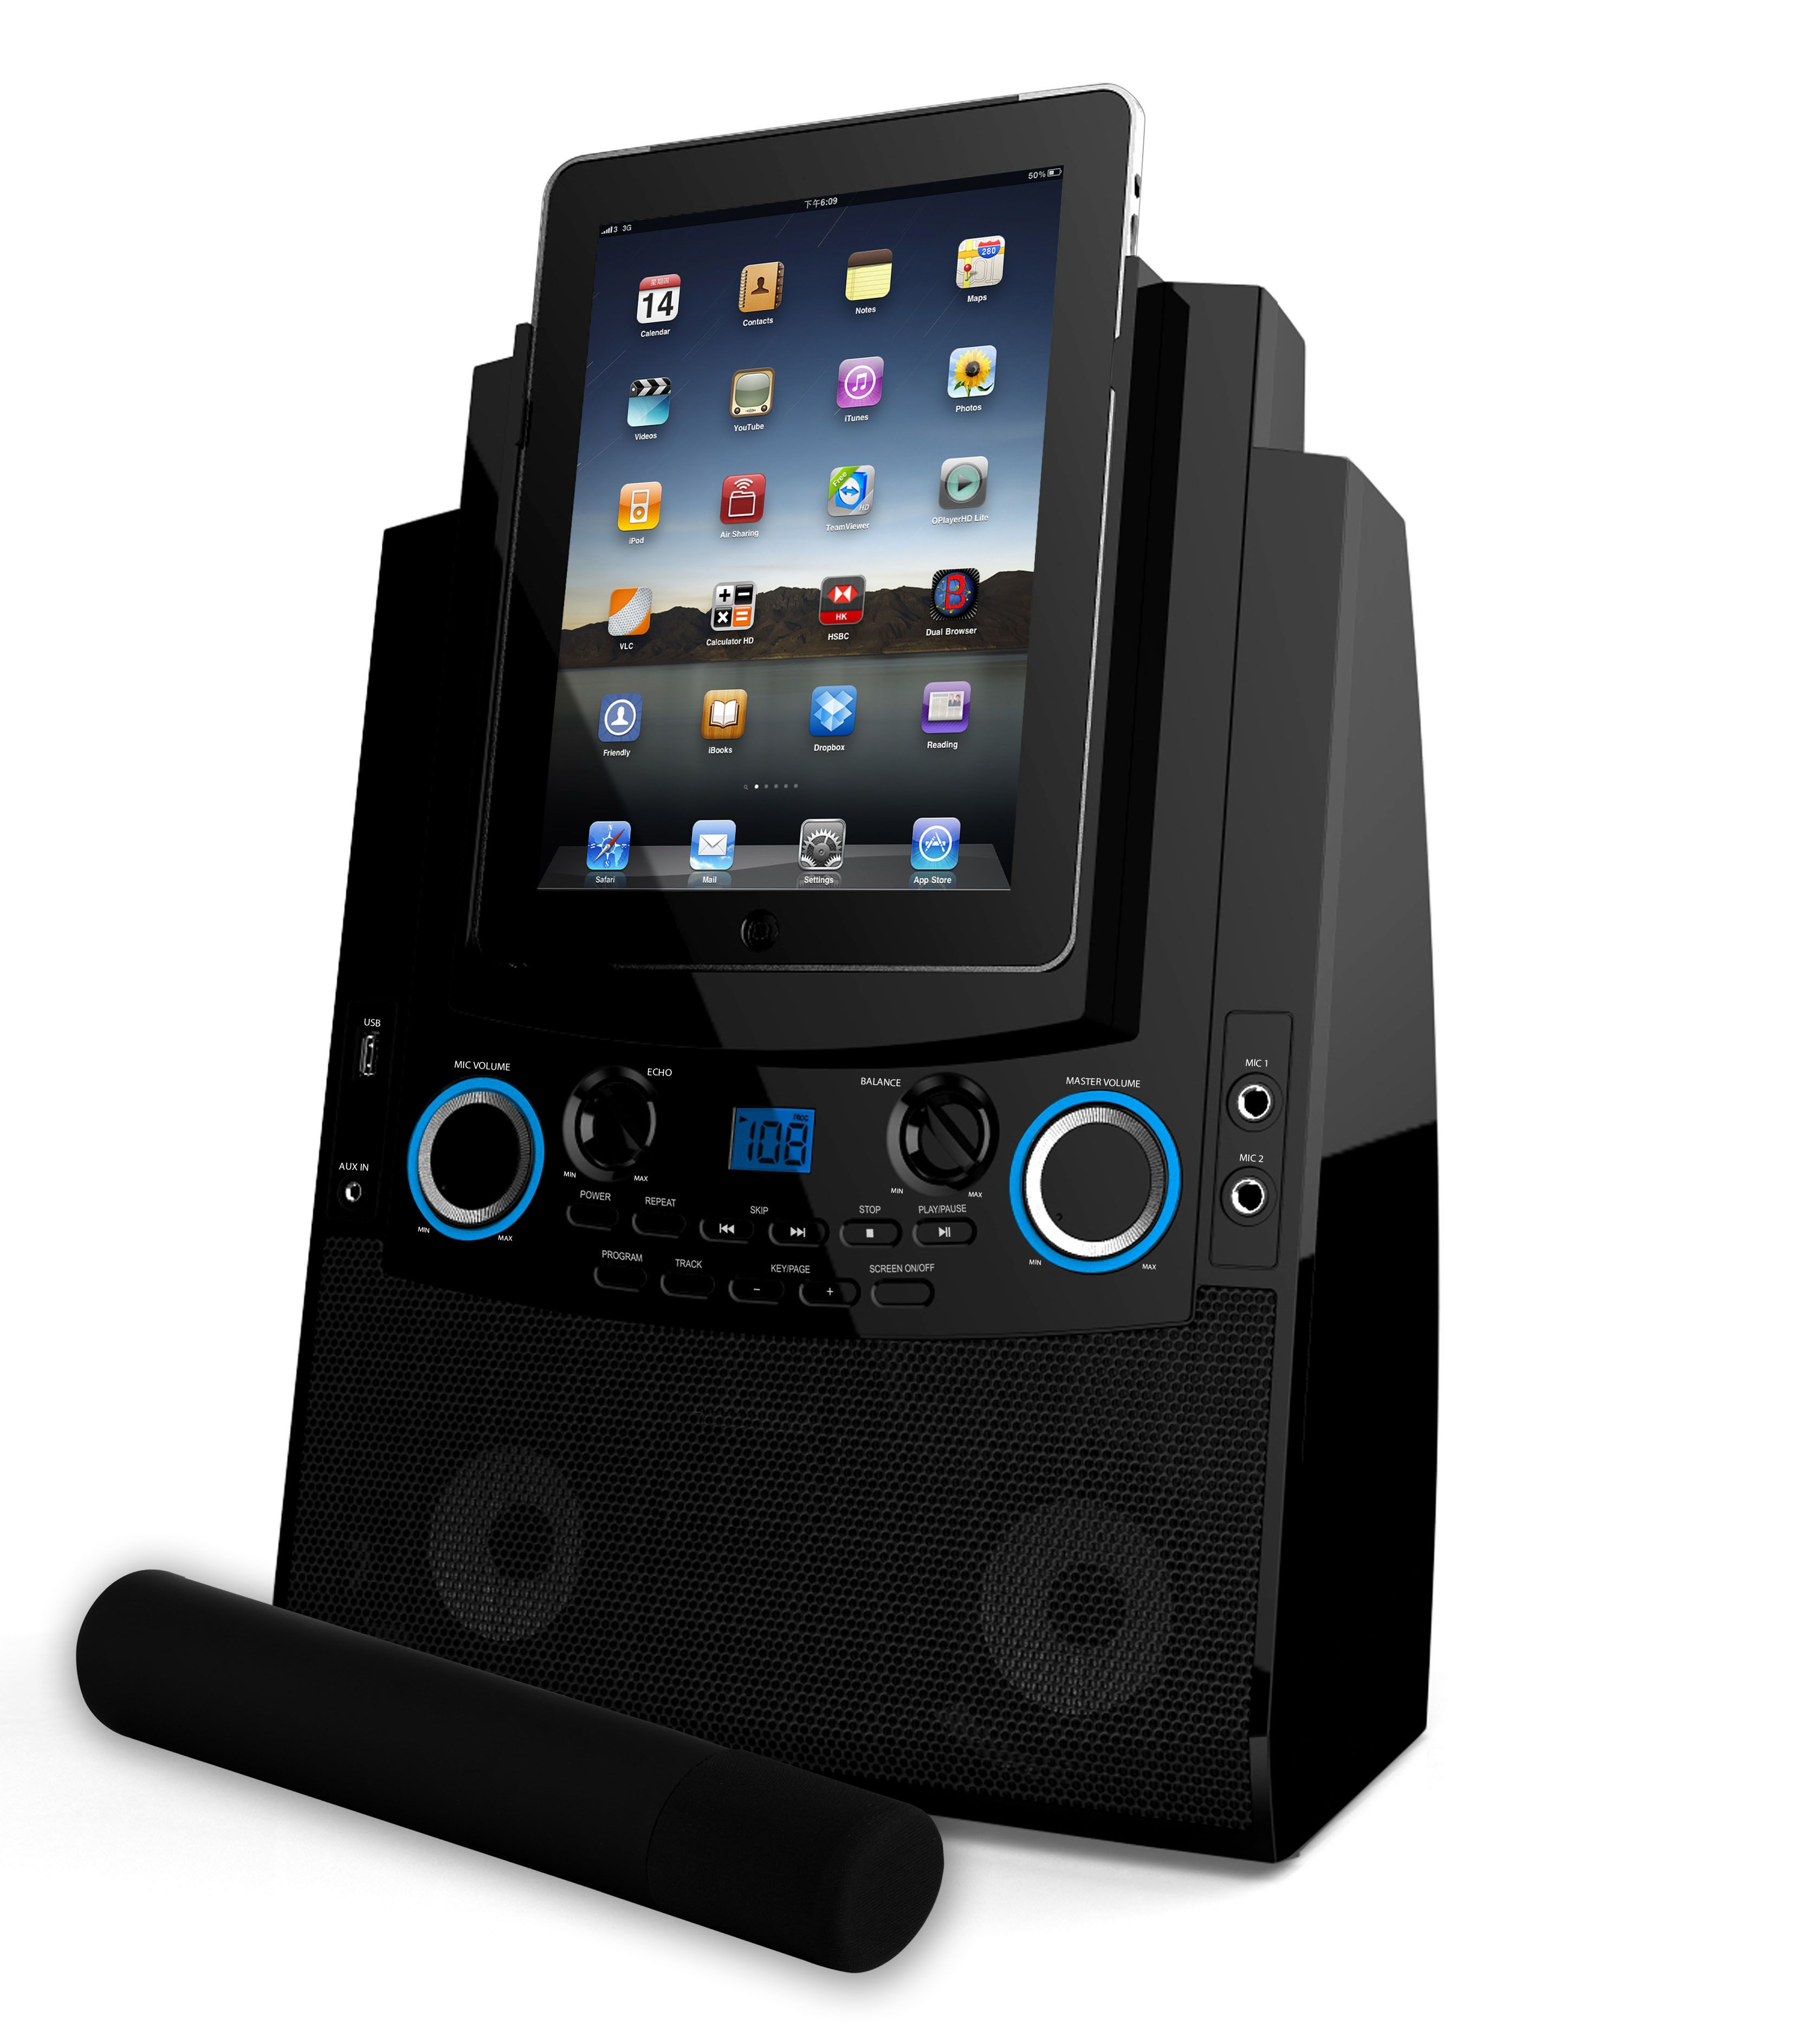 Go ahead and add 'Karaoke Player' to your iPads resume